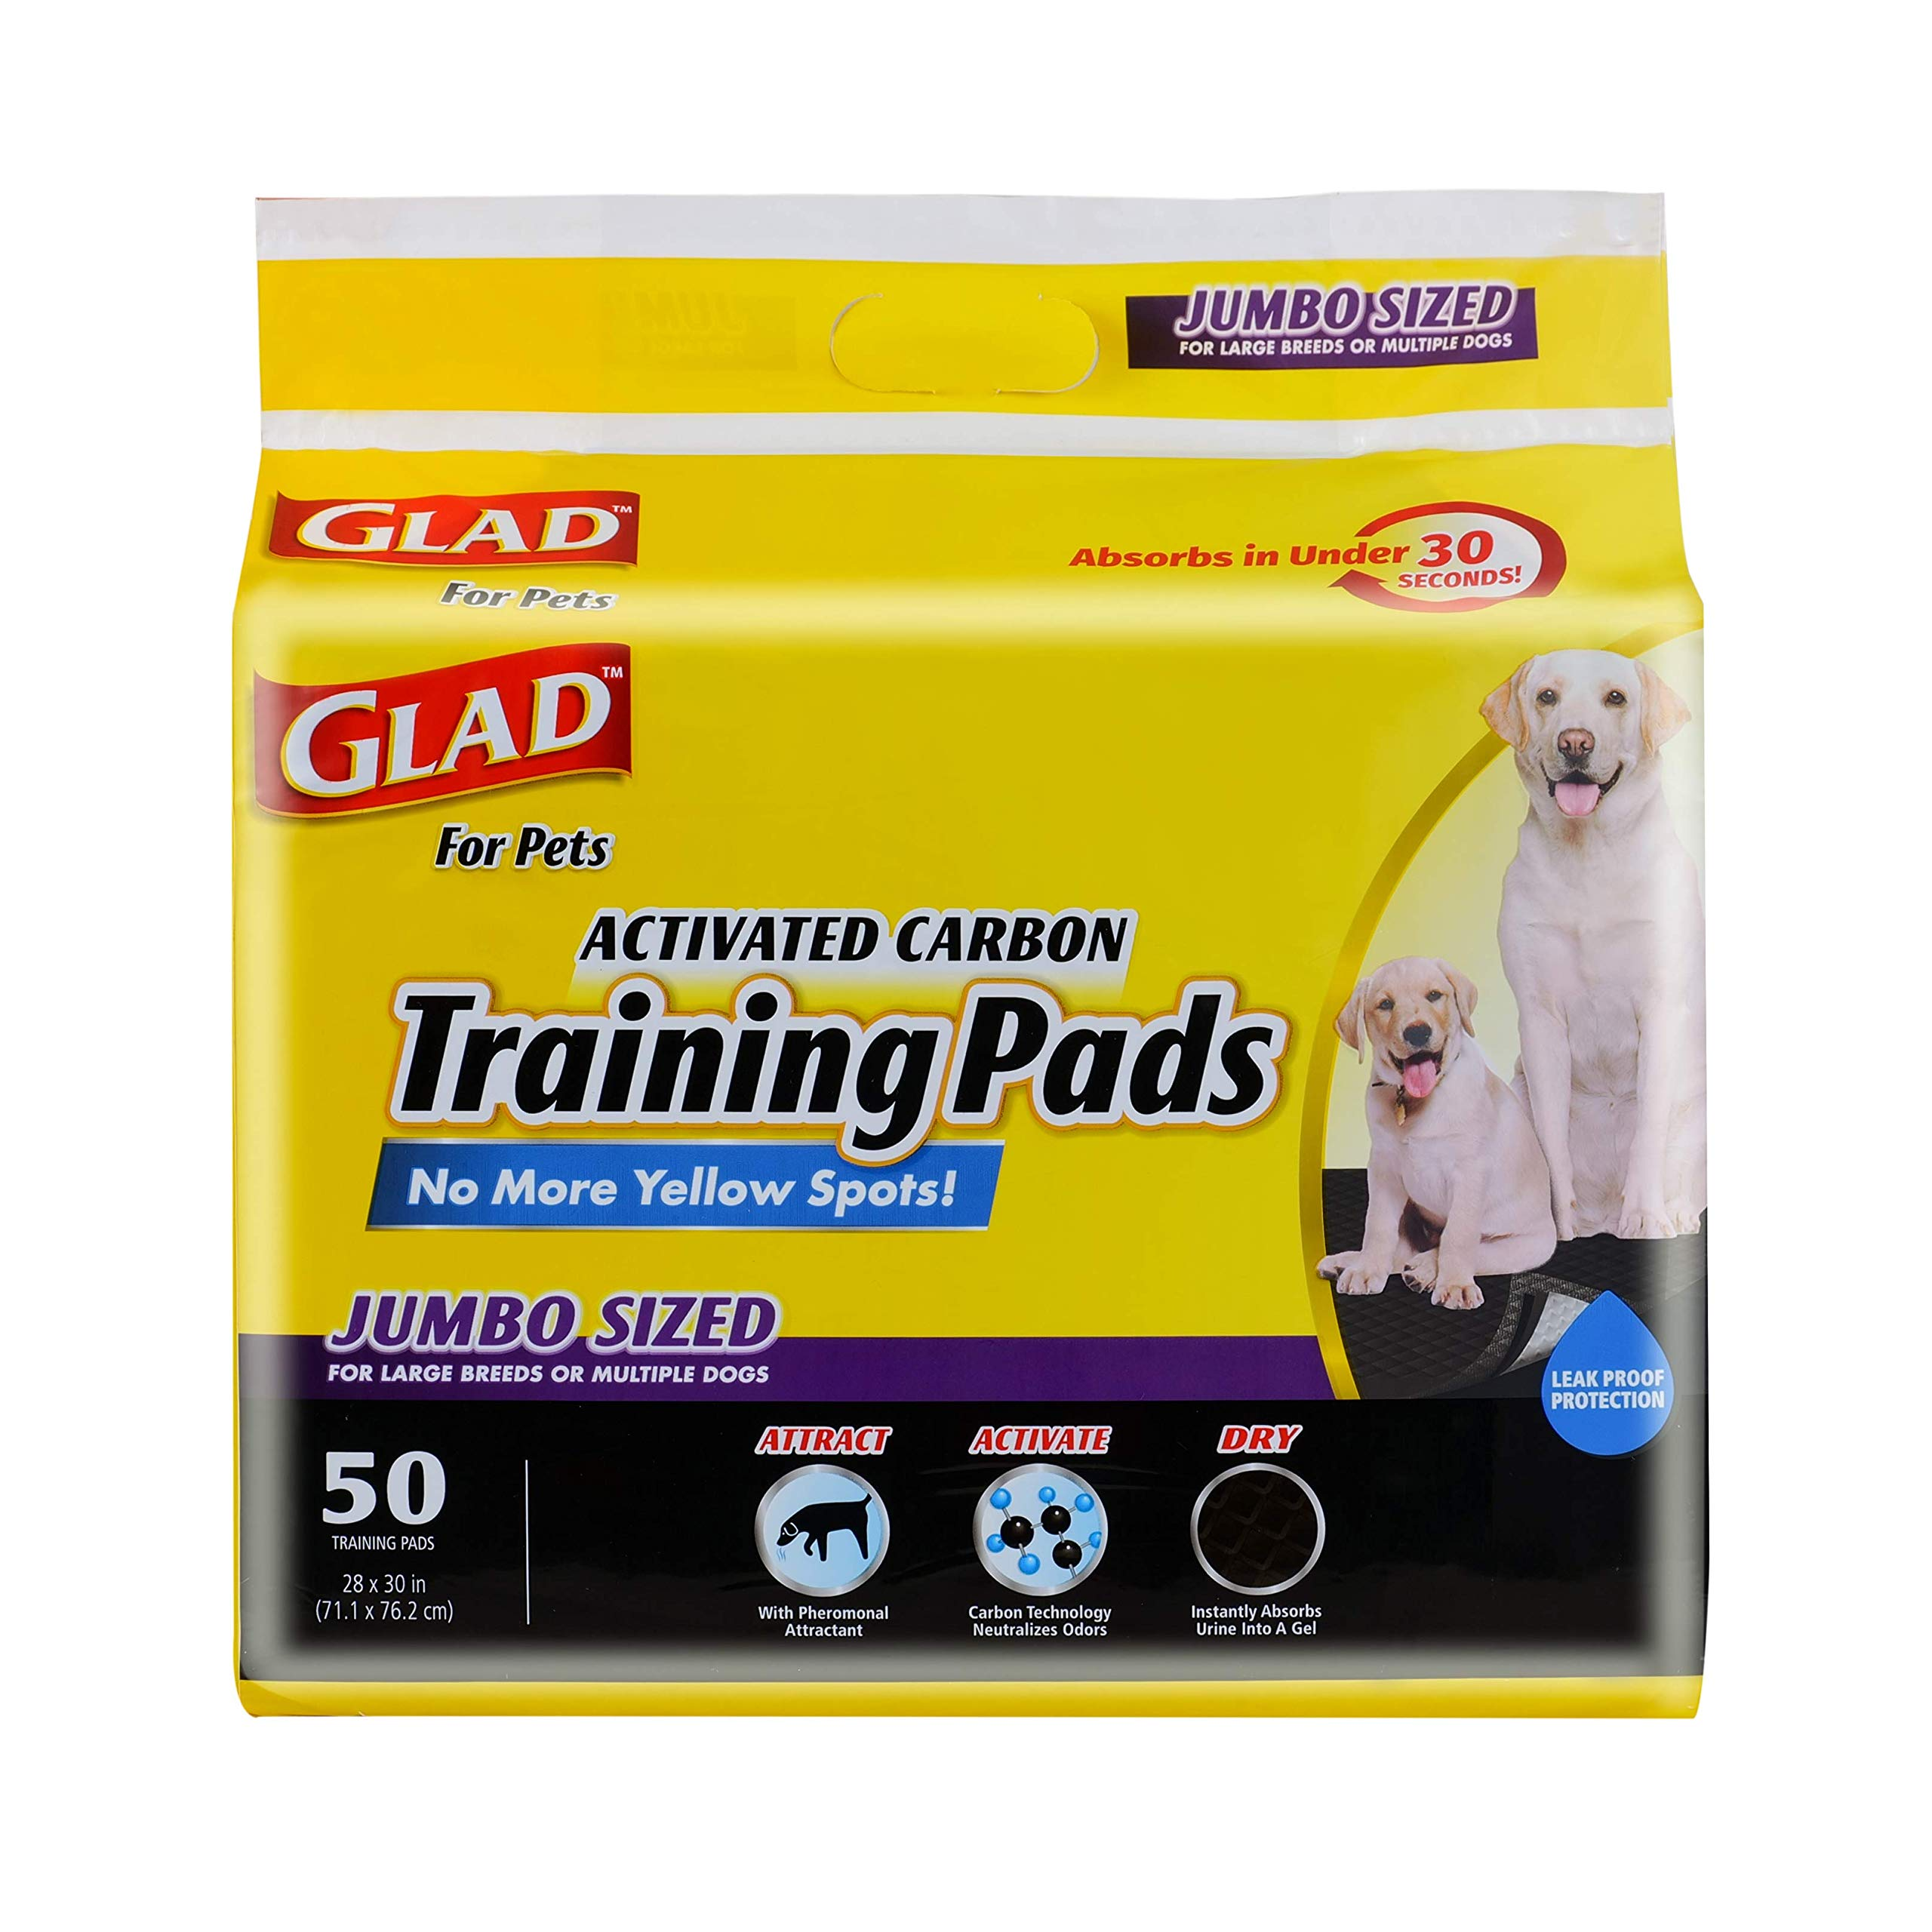 Glad for Pets Jumbo-Size Charcoal Puppy Pads | Black Training Pads That Absorb & Neutralize Urine Instantly | New & Improved Quality Puppy Pee Pads